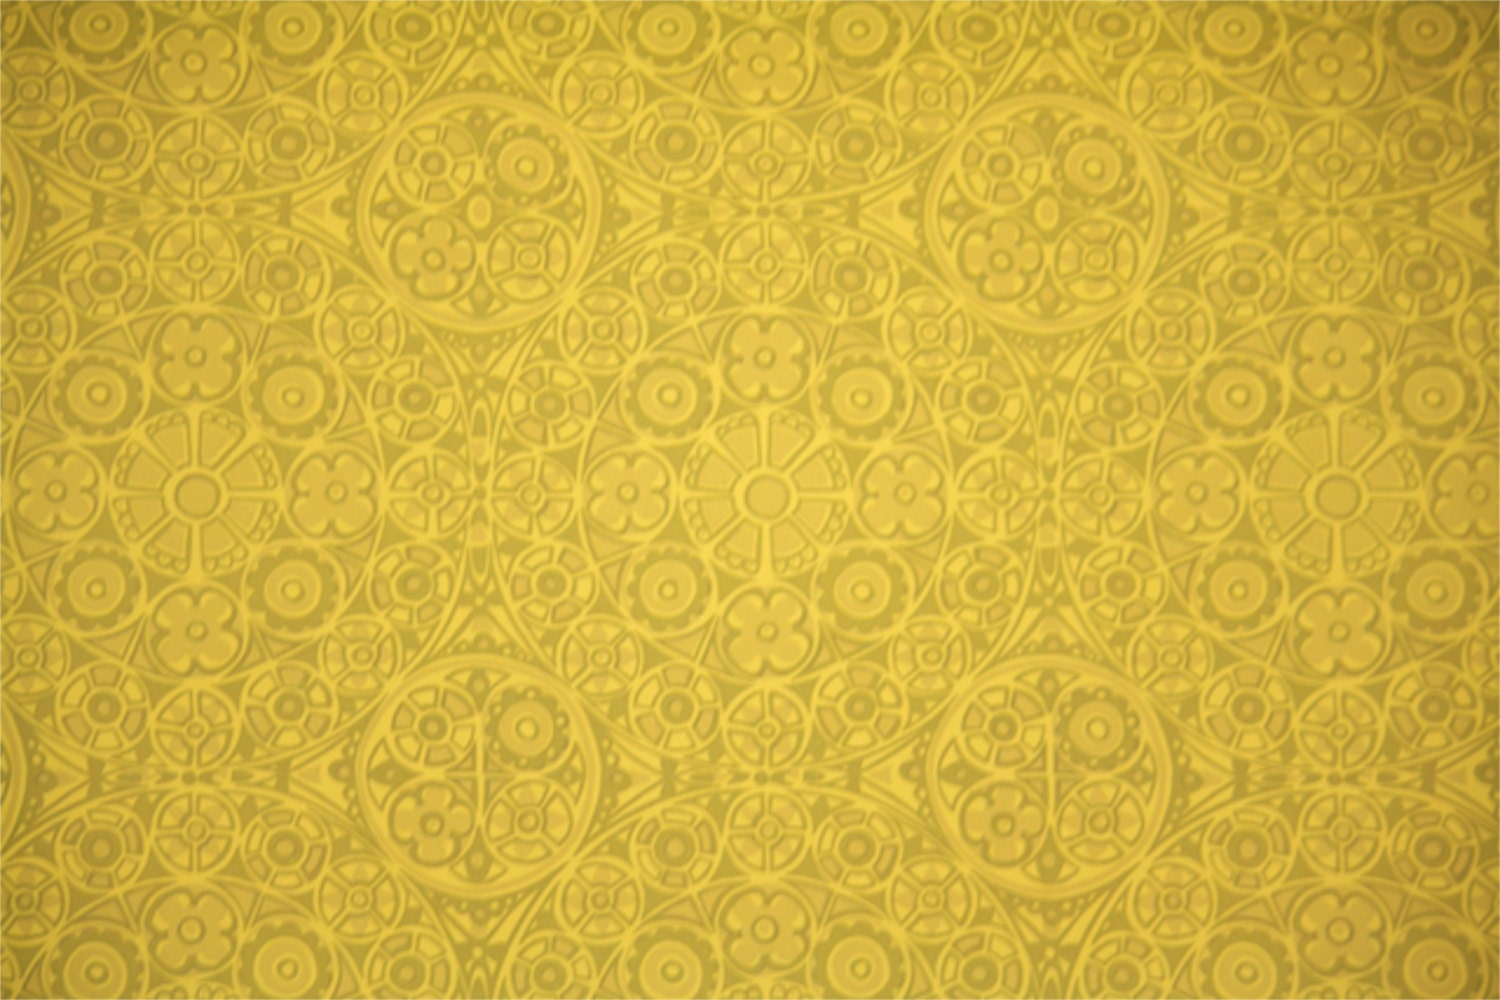 1970s vintage wallpaper retro - photo #26